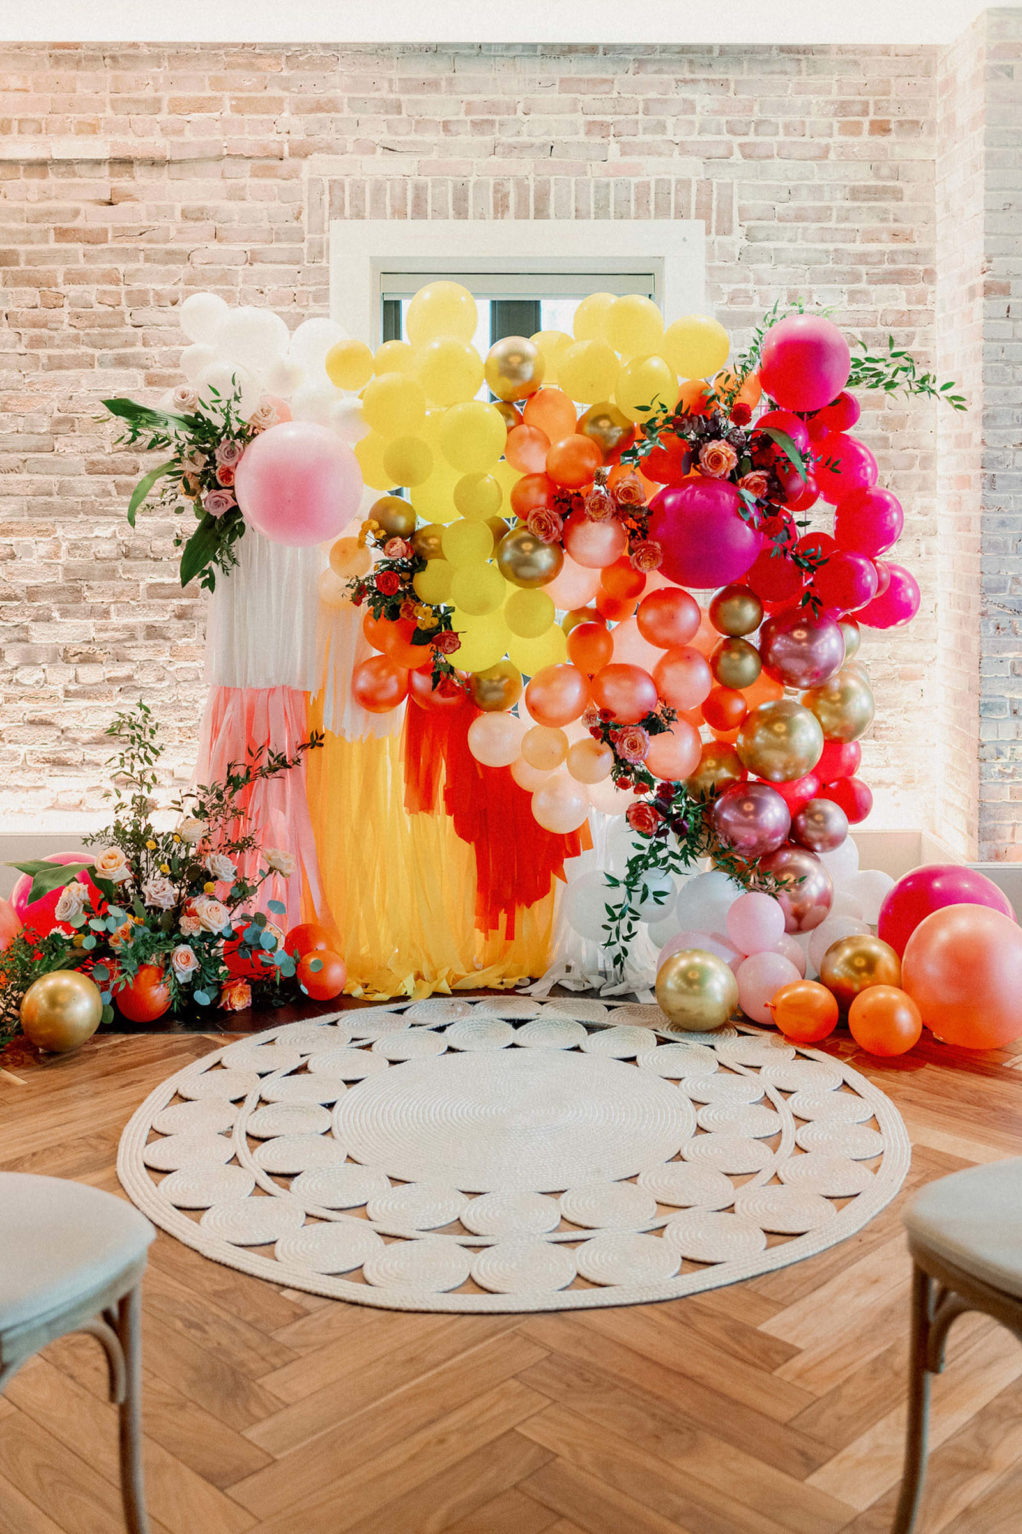 Colorful Whimsical Wedding Ceremony Decor, Wooden Cross Back Chairs, Yellow, Orange, Pink, Gold Balloon Fringe Ceremony BackdropDowntown St Pete Modern Industrial Chic Wedding Venue Red Mesa Events   Tampa Bay Wedding Photographer Dewitt for Love